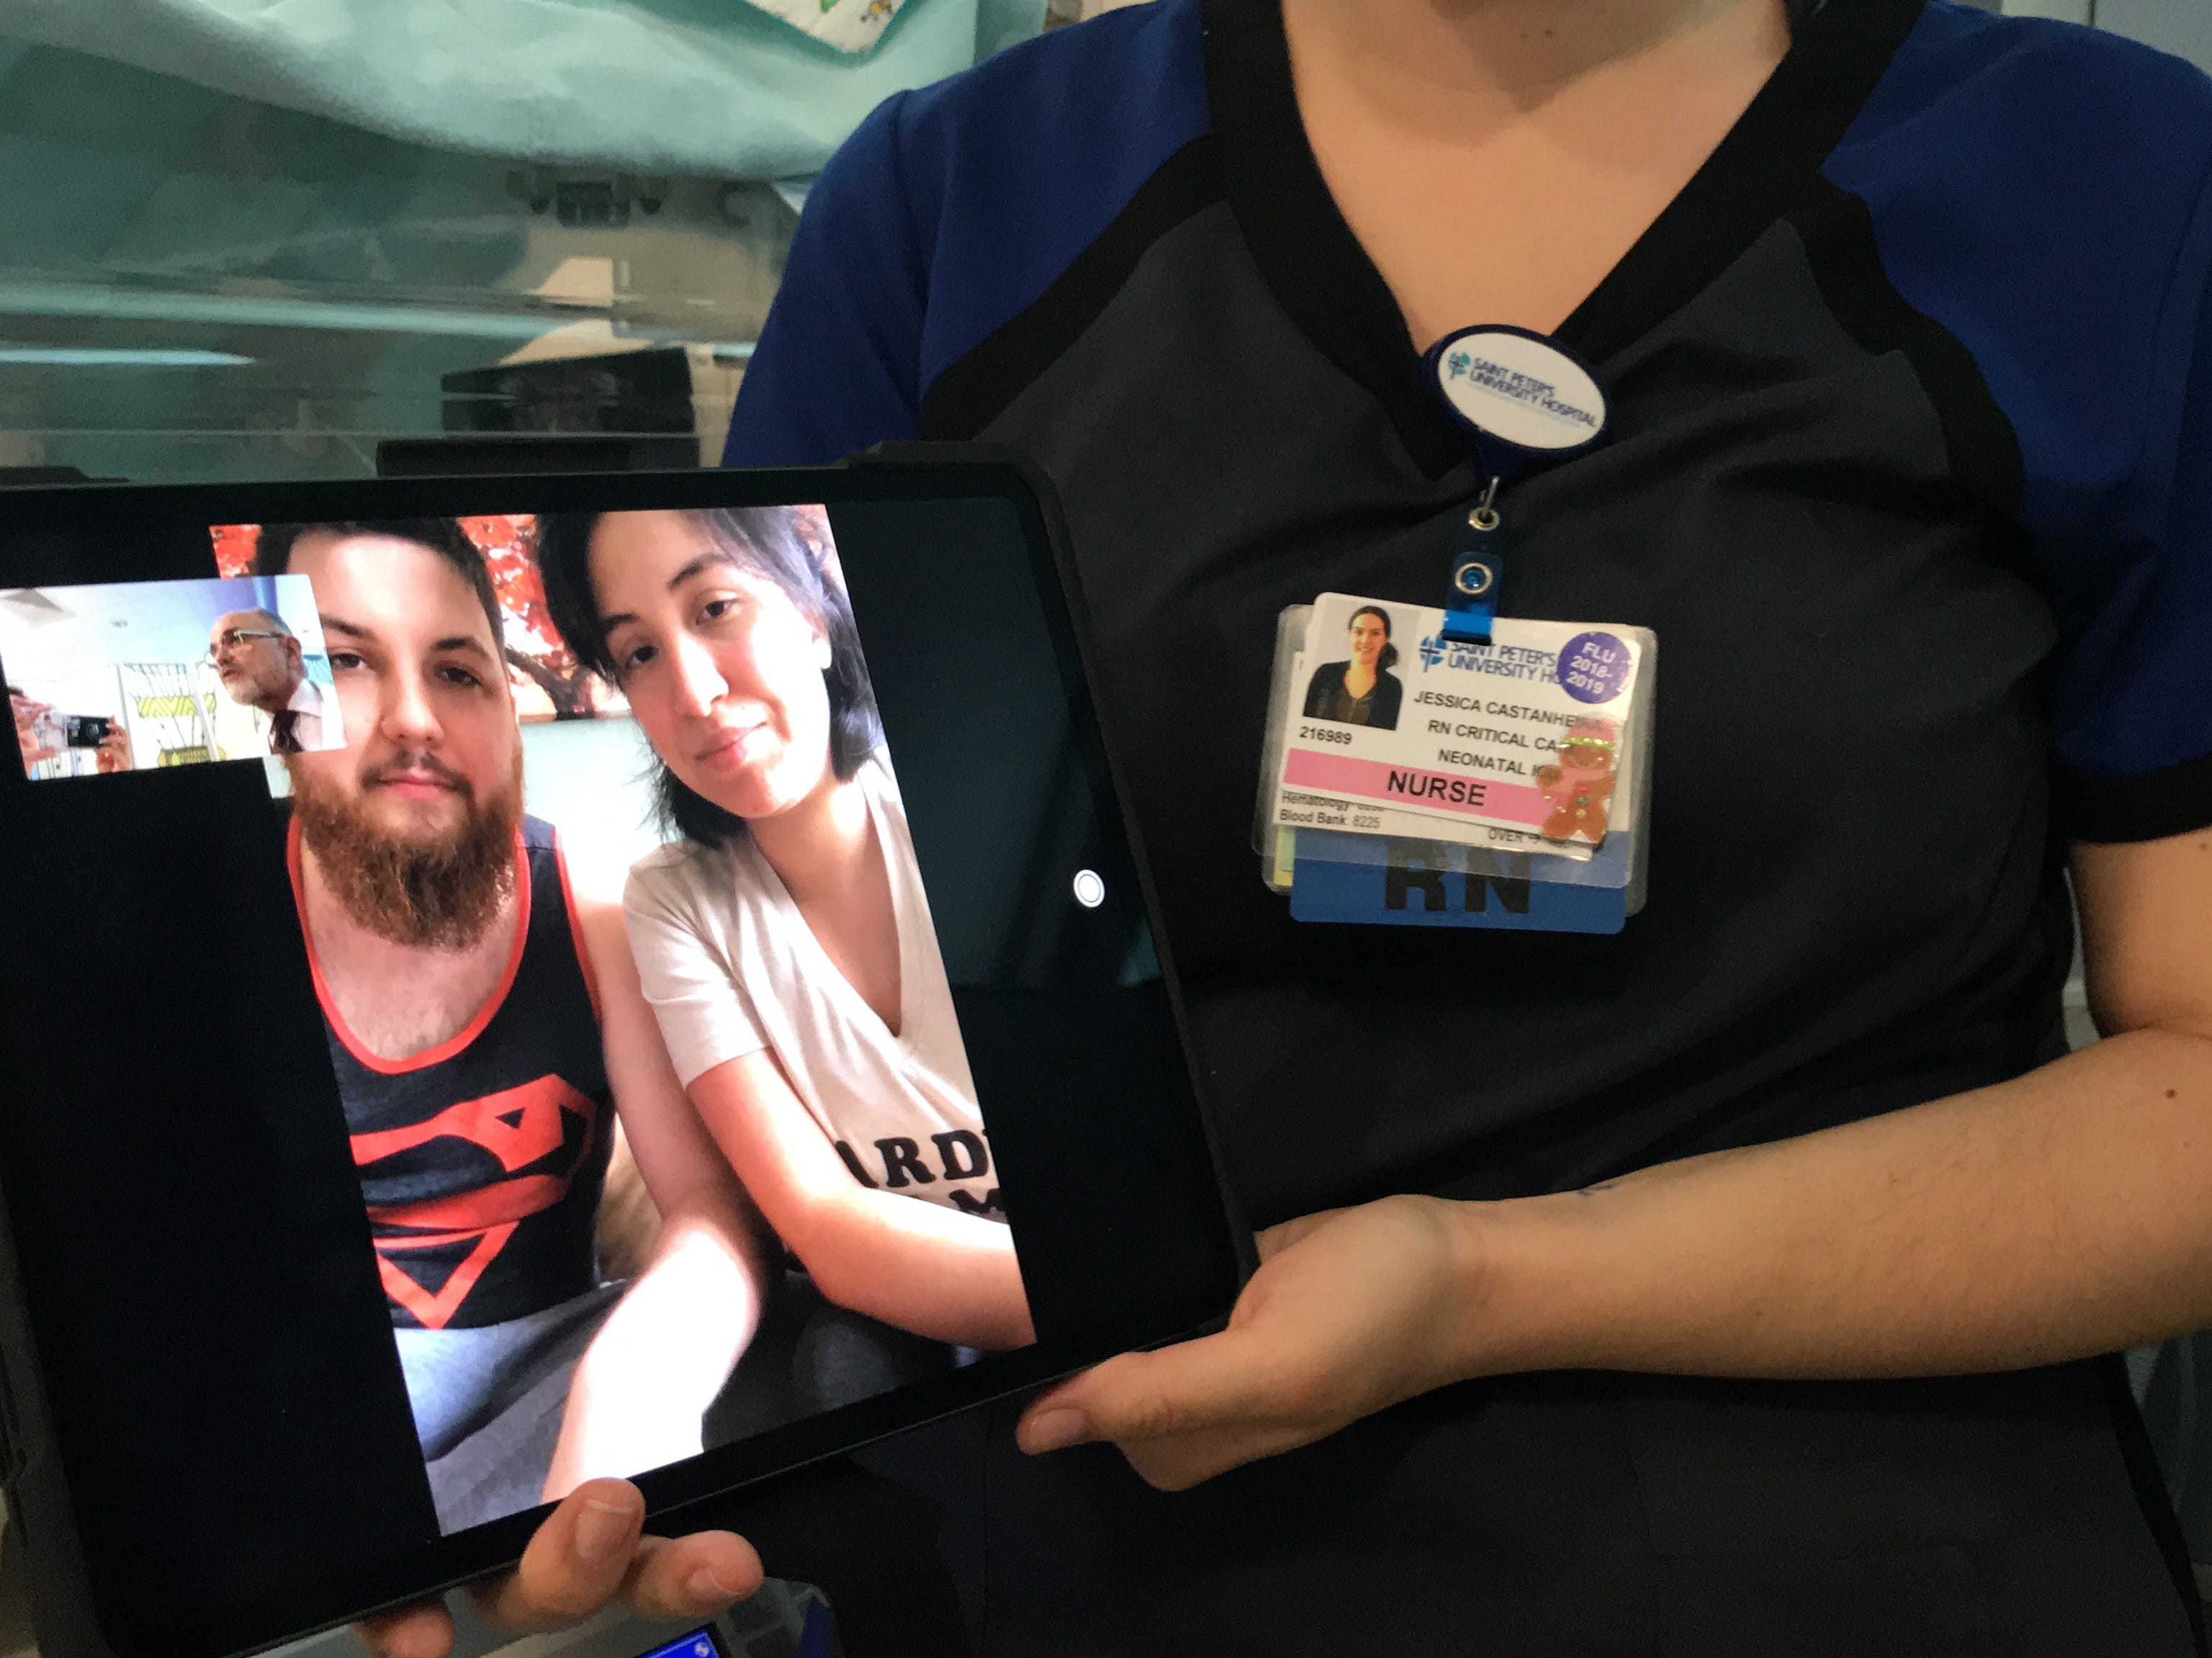 Neonatal Critical Care Nurse Jessica Castanheira, here with newborn Joseph Nardone Jr. of Rahway and his parents Sabrina Ramirez and Joseph Nardone Sr. (on the iPad), demonstrate the recently launched daily FaceTime program in the Neonatal Intensive Care Unit (NICU) of Saint Peter's University Hospital in New Brunswick. The first-of-its-kind in the state, the program delivers a liveaudio and visual feed to parents whose infants need specialized long-term care.